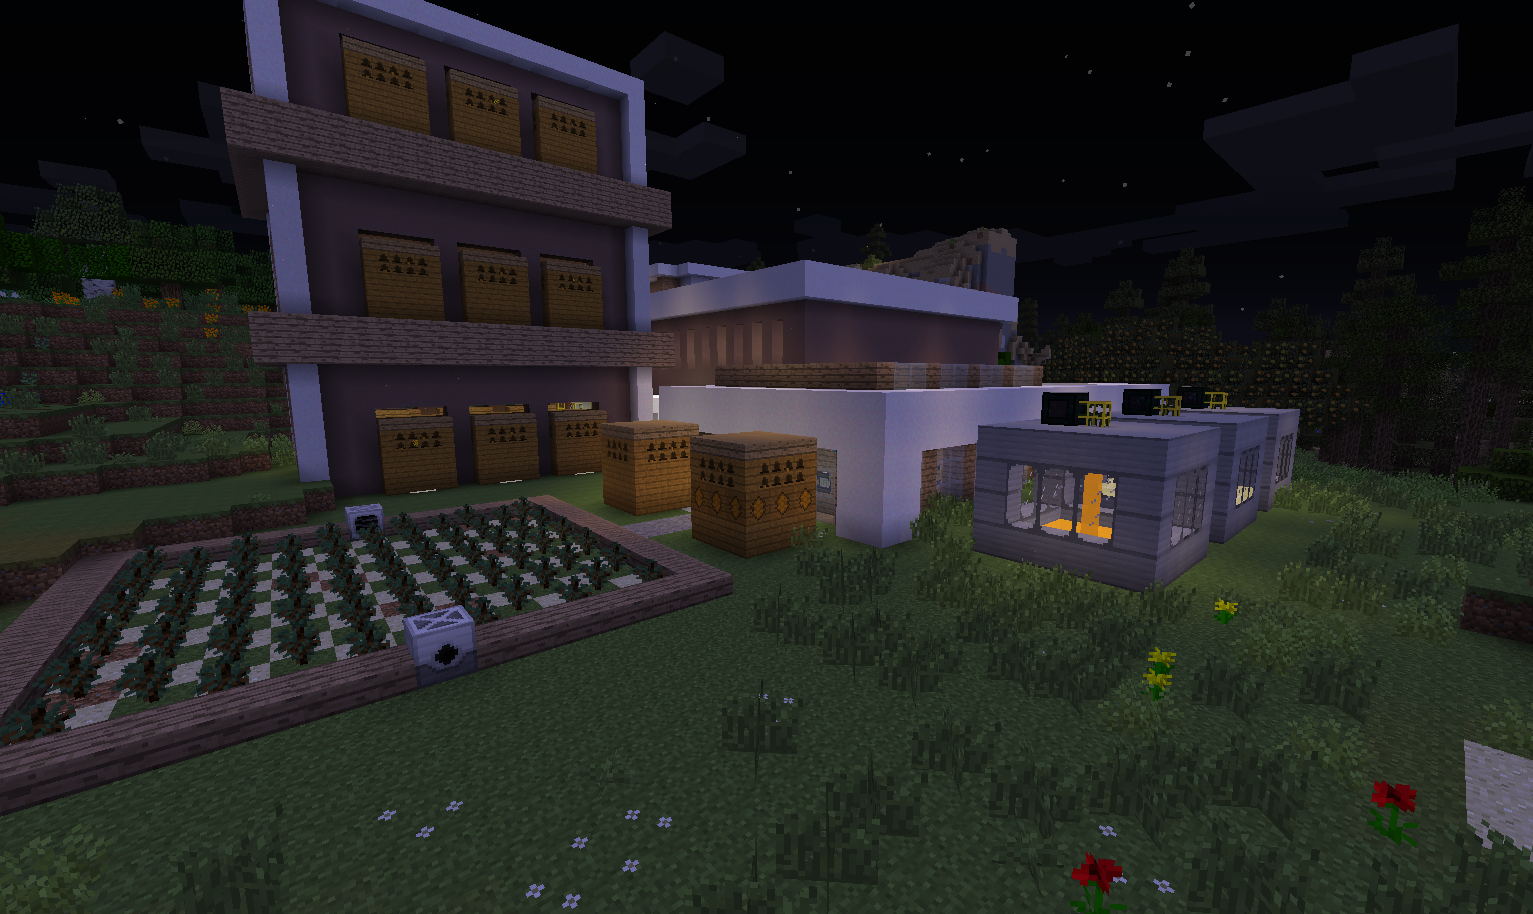 Modjo Minecraft: New server, new bee factory